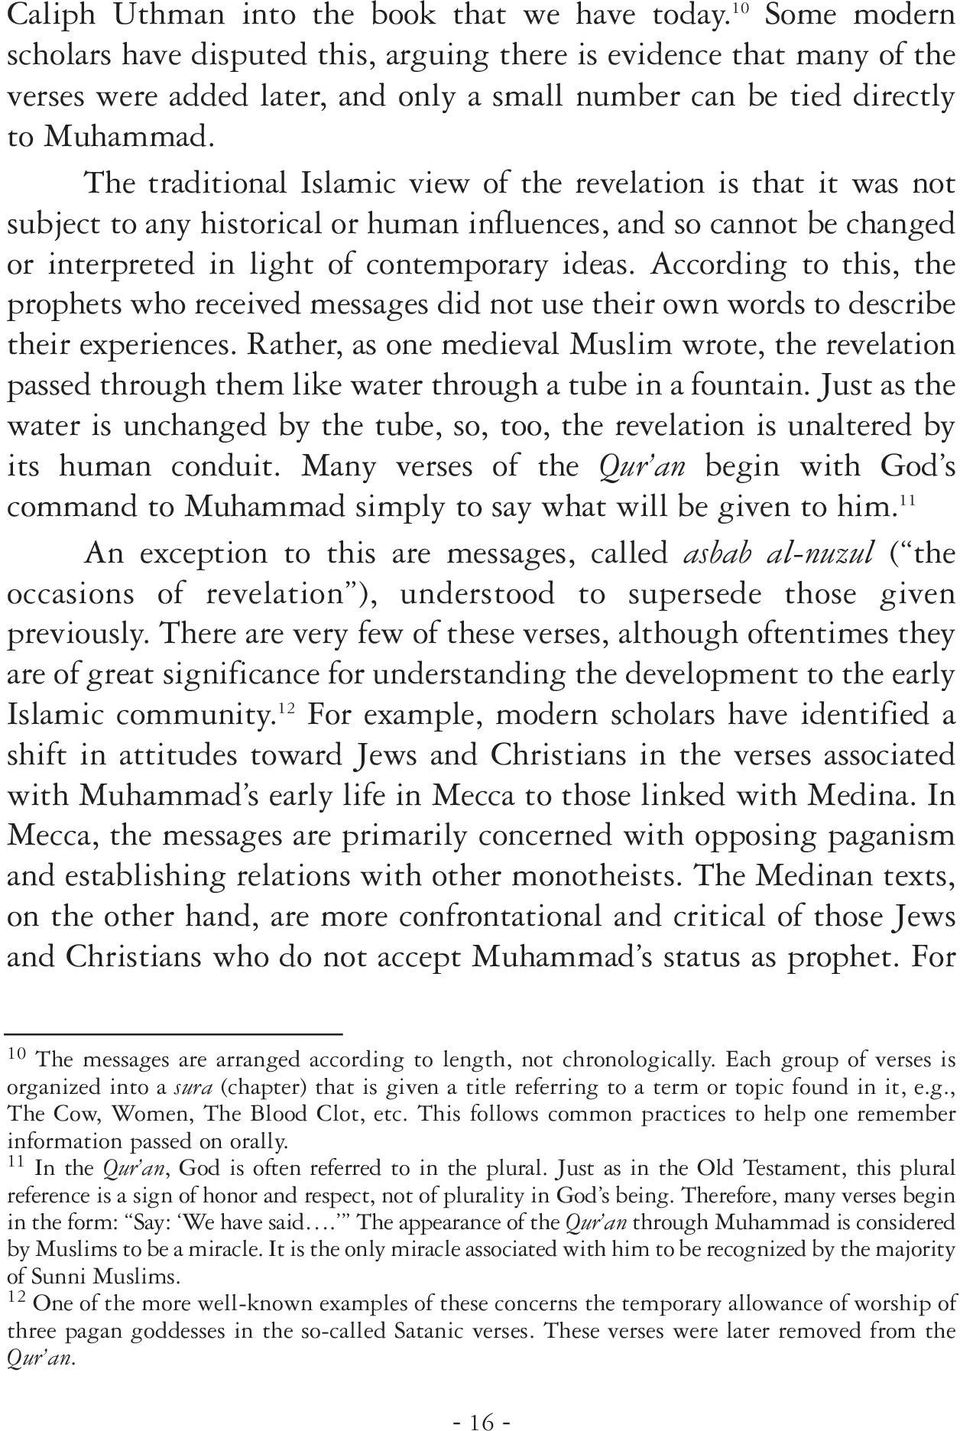 The traditional Islamic view of the revelation is that it was not subject to any historical or human influences, and so cannot be changed or interpreted in light of contemporary ideas.